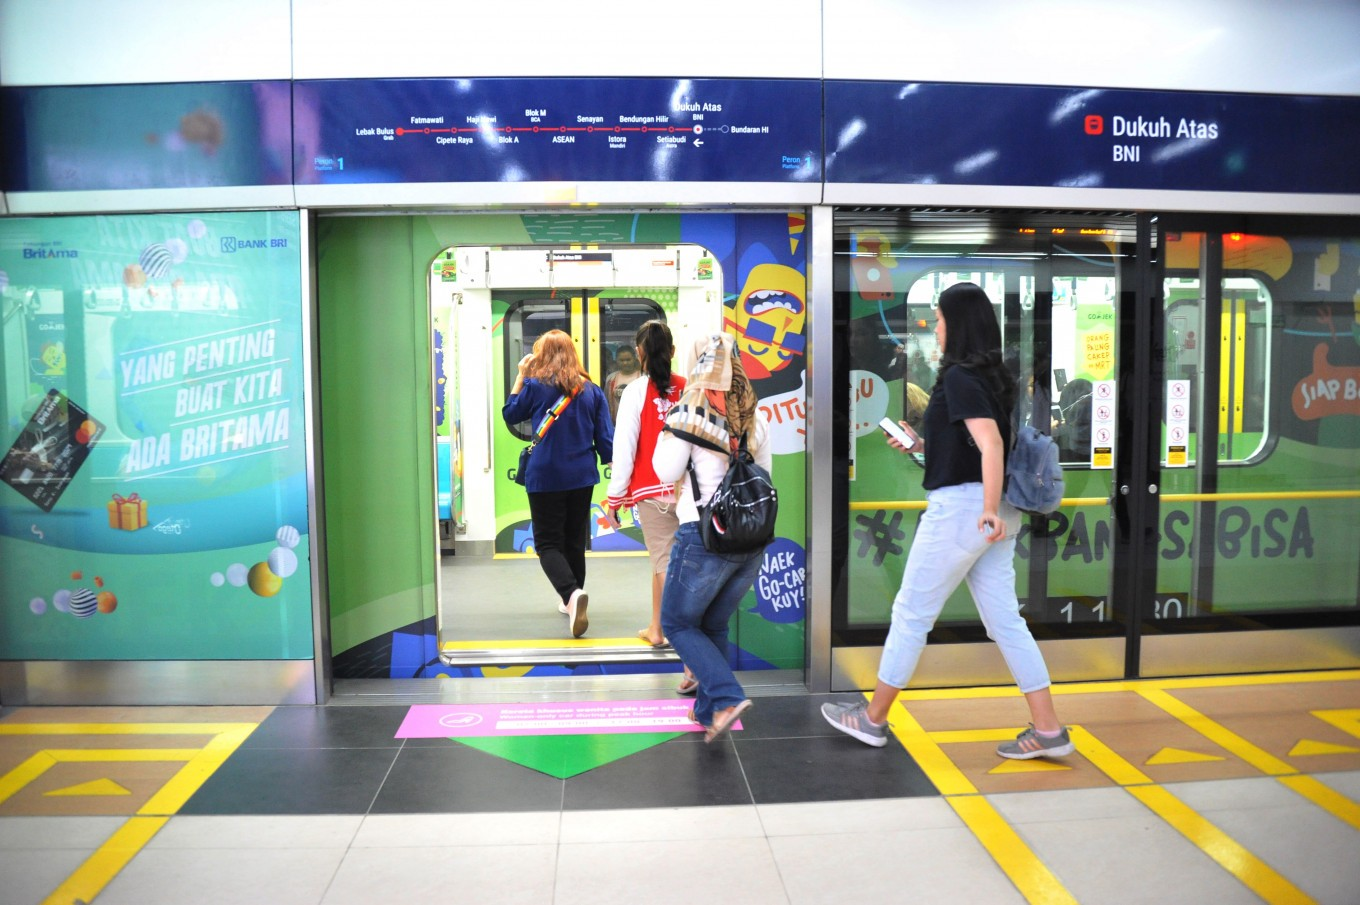 Scan and pay: MRT Jakarta soon to accept QR code payments for tickets